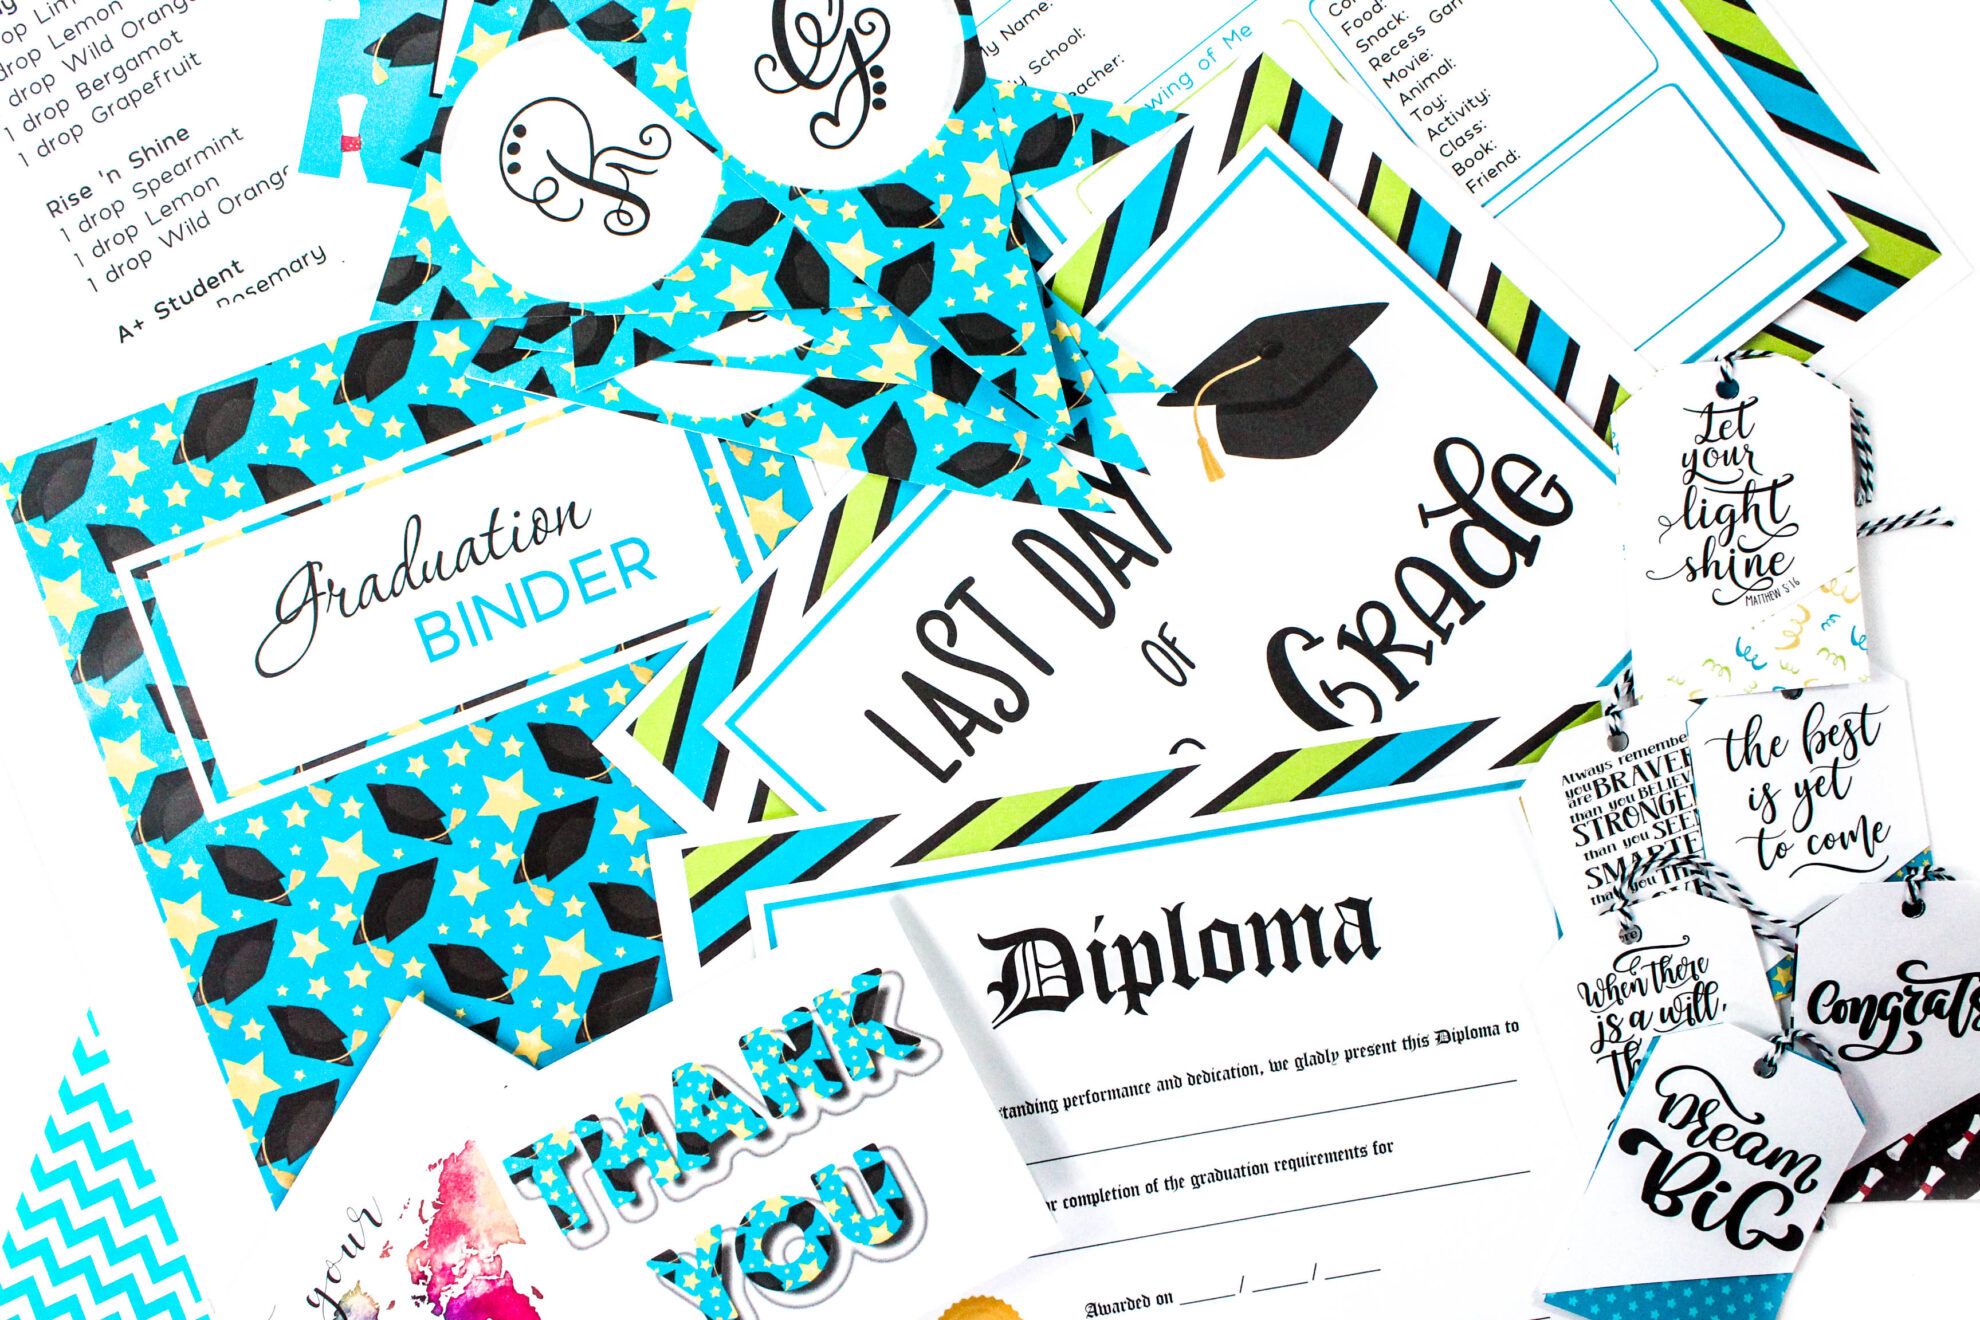 Celebrate your child's graduation with this brand new 160+ page Graduation Binder! #graduationbinder #graduationprintables #graduationcards #graduationgifts